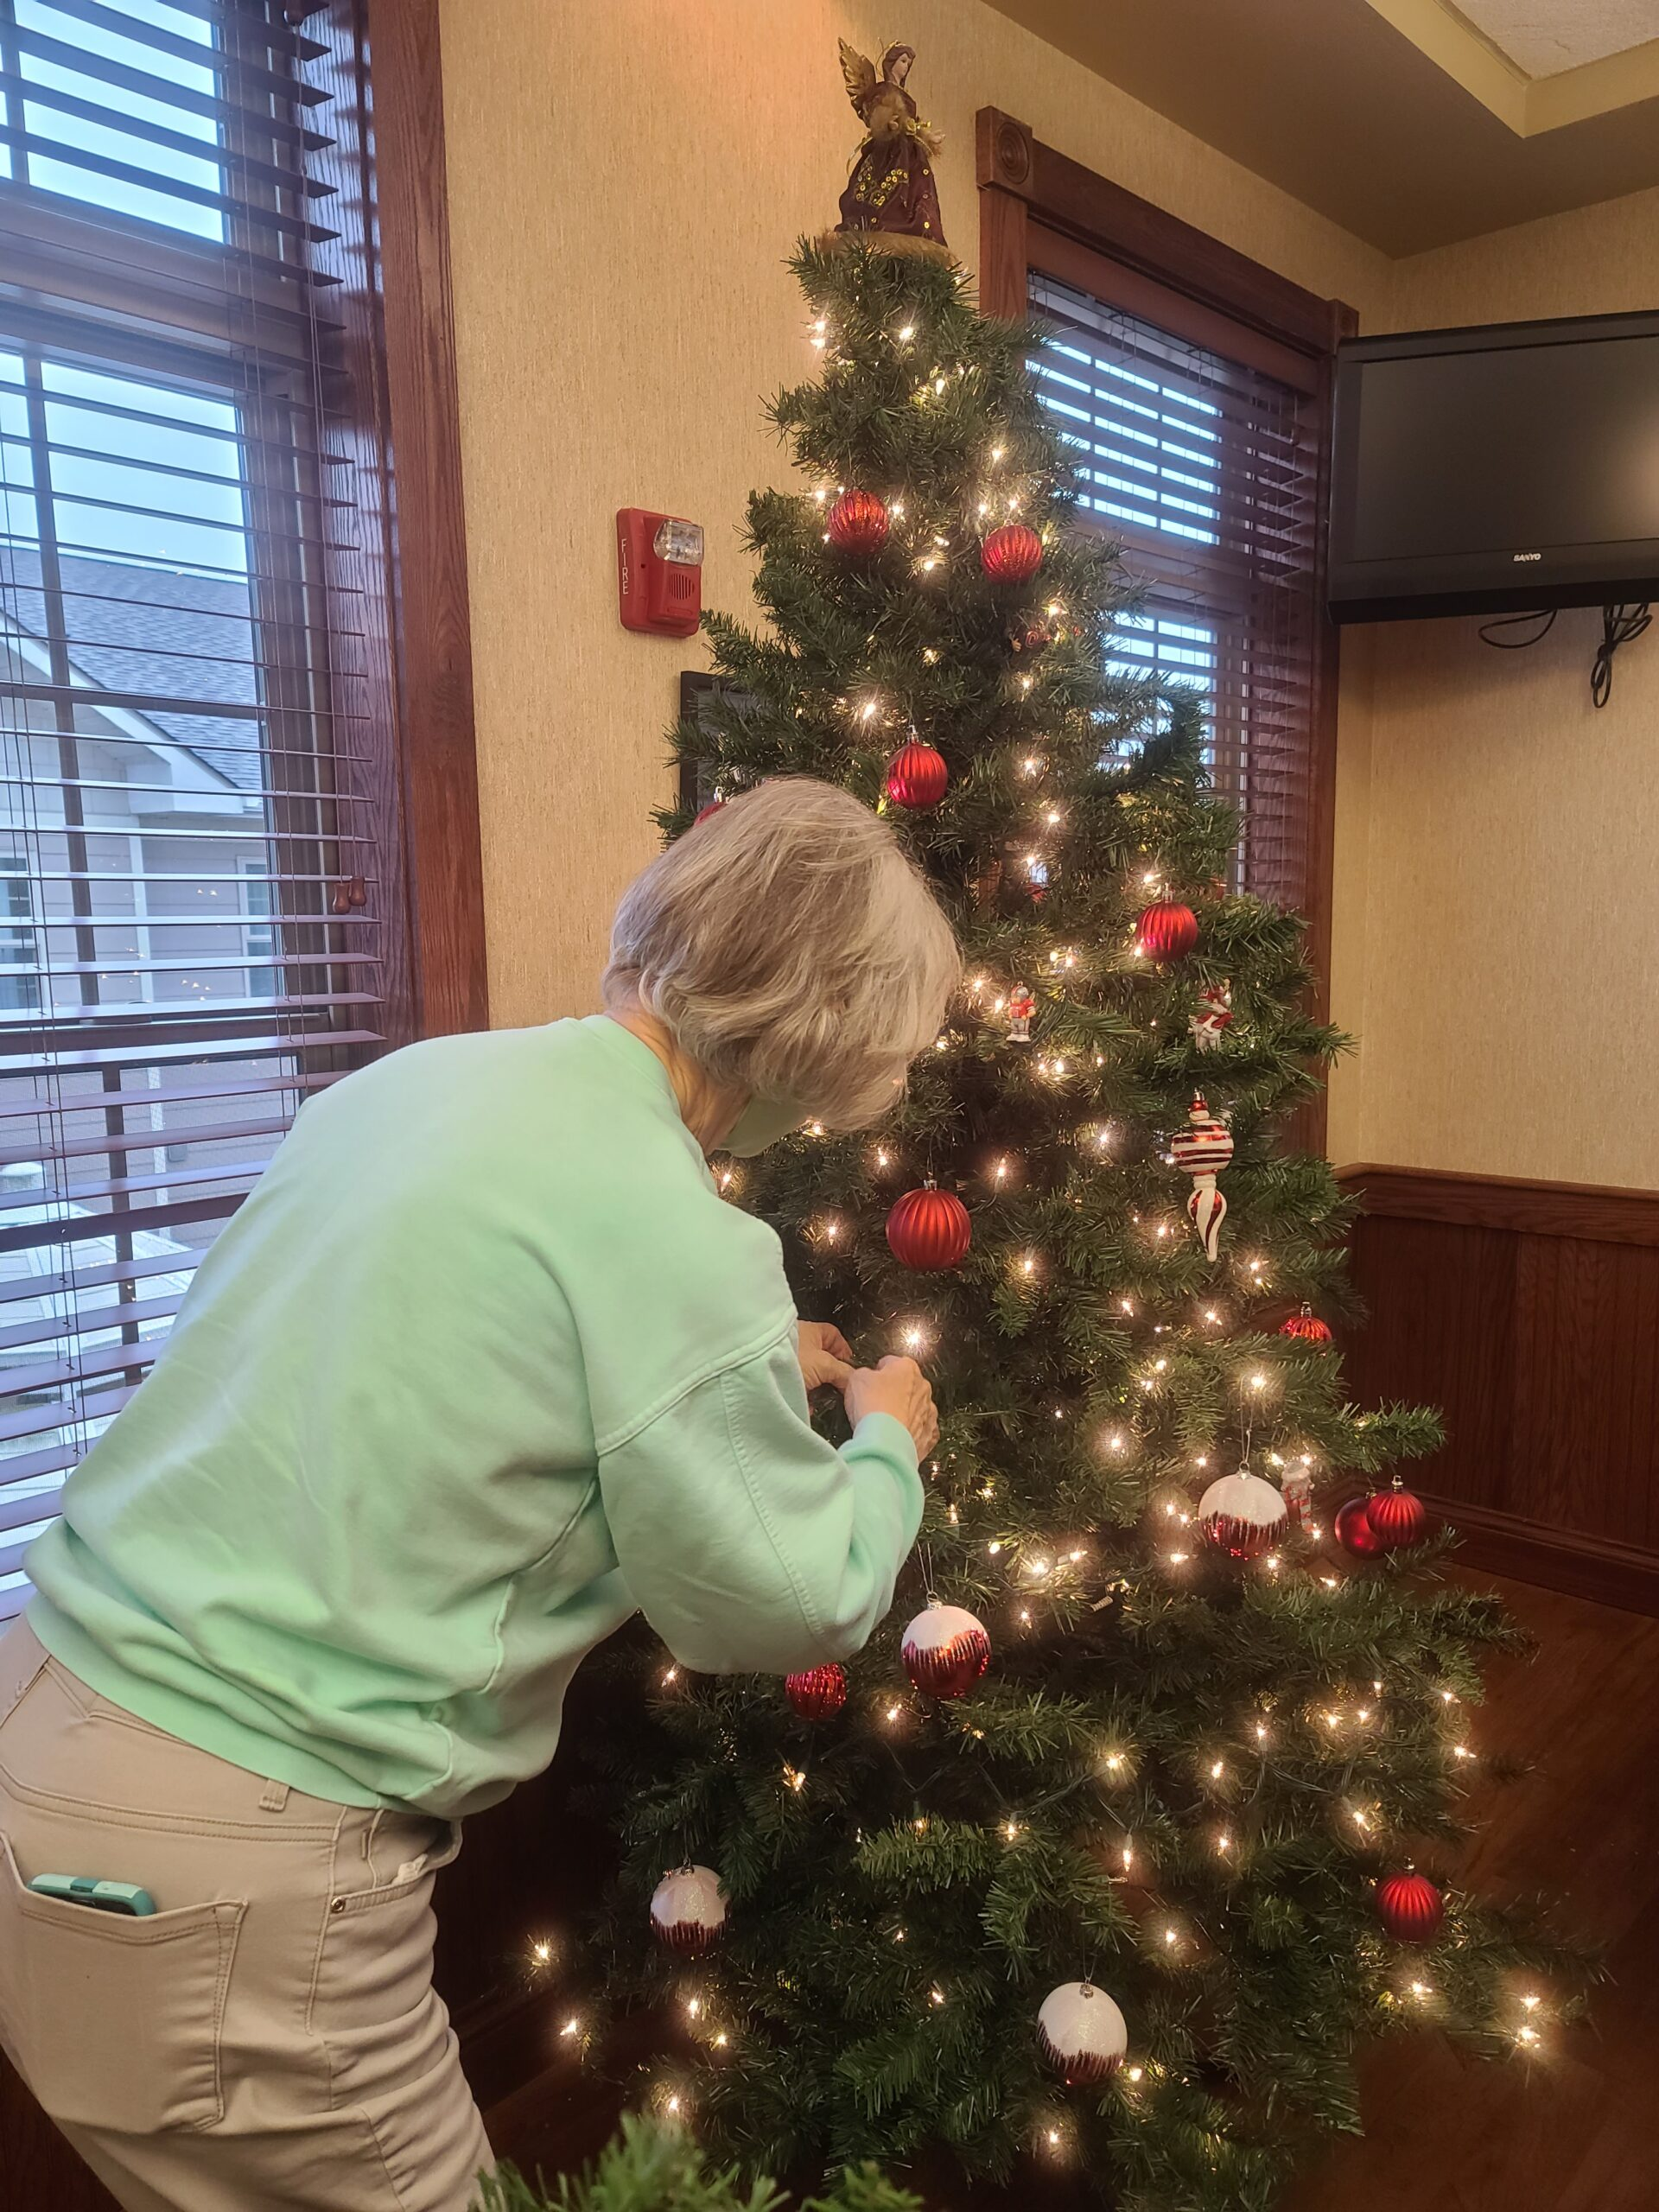 Barb decorating for Christmas